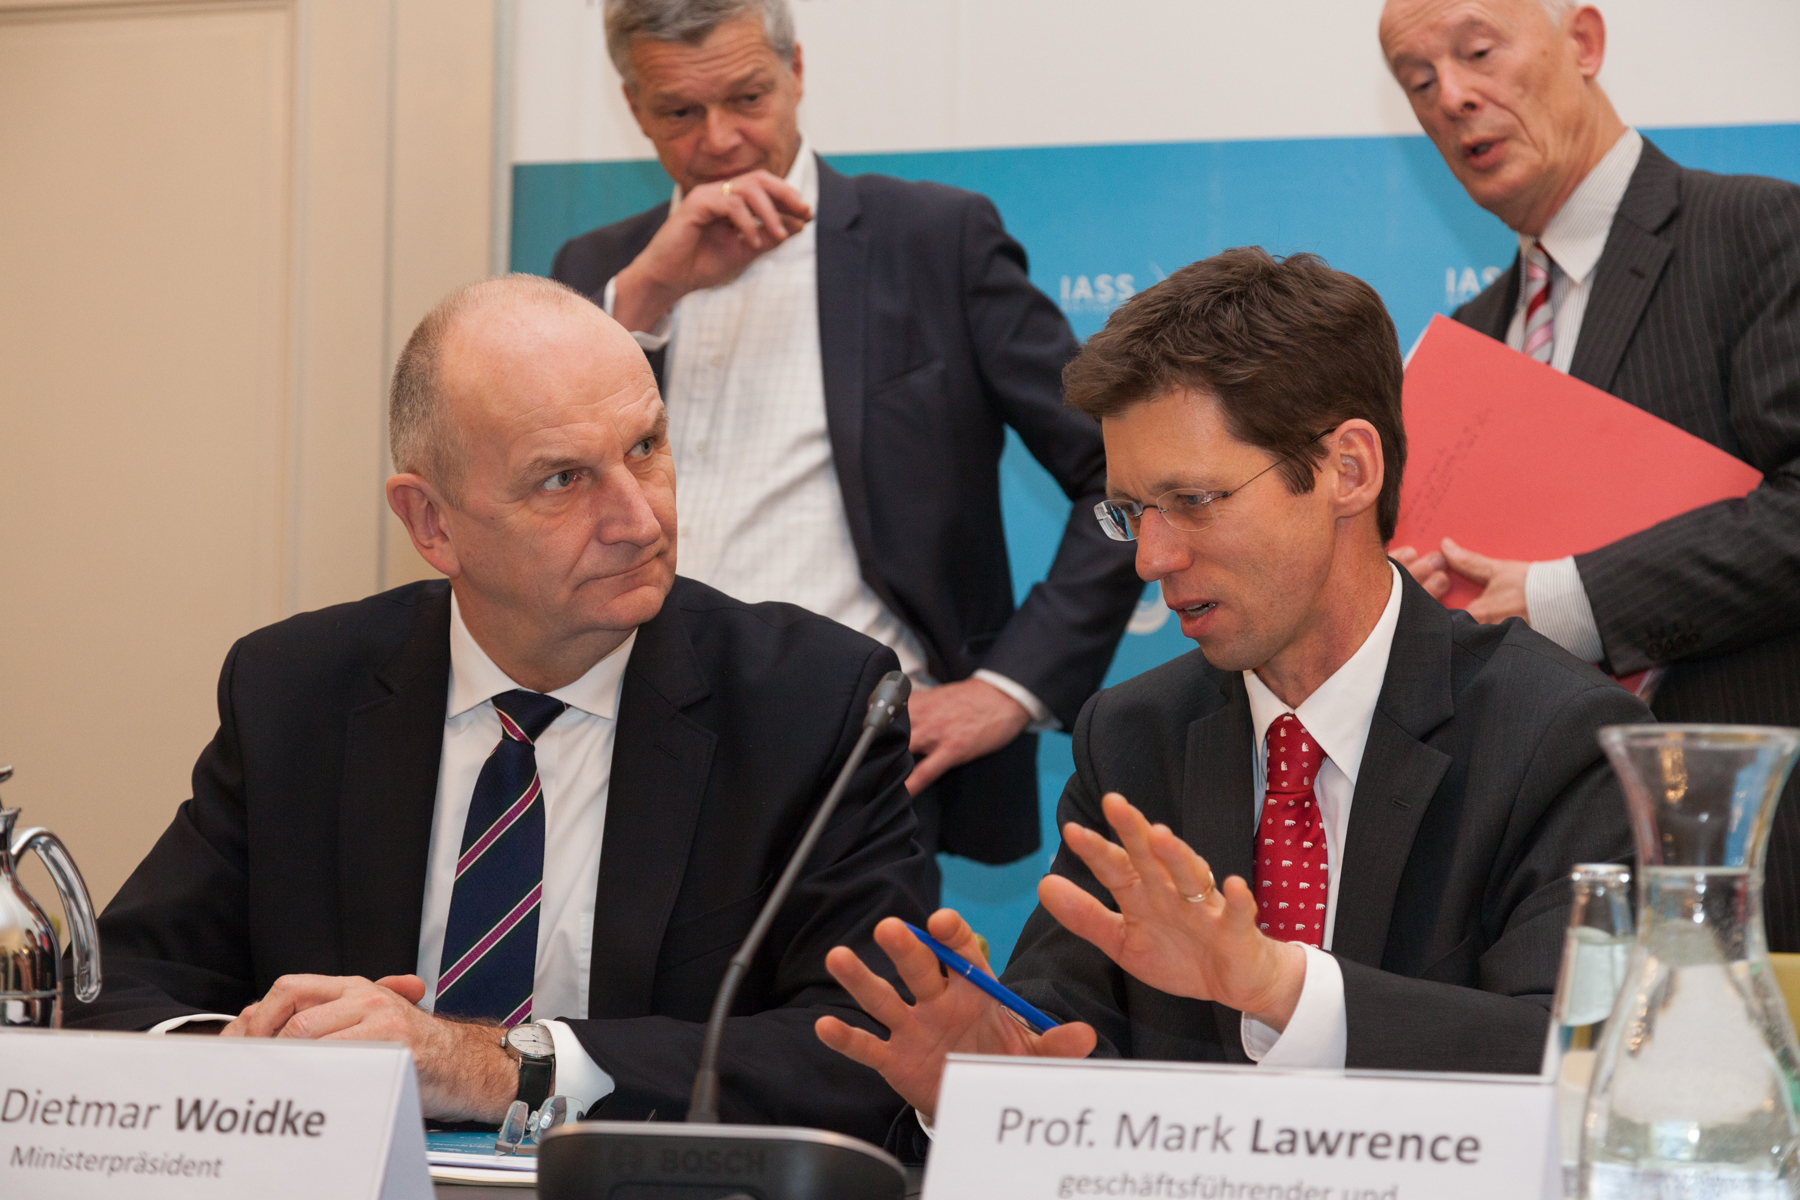 IASS Director Mark Lawrence in conversation with the Governor of Brandenburg, Dietmar Woidke